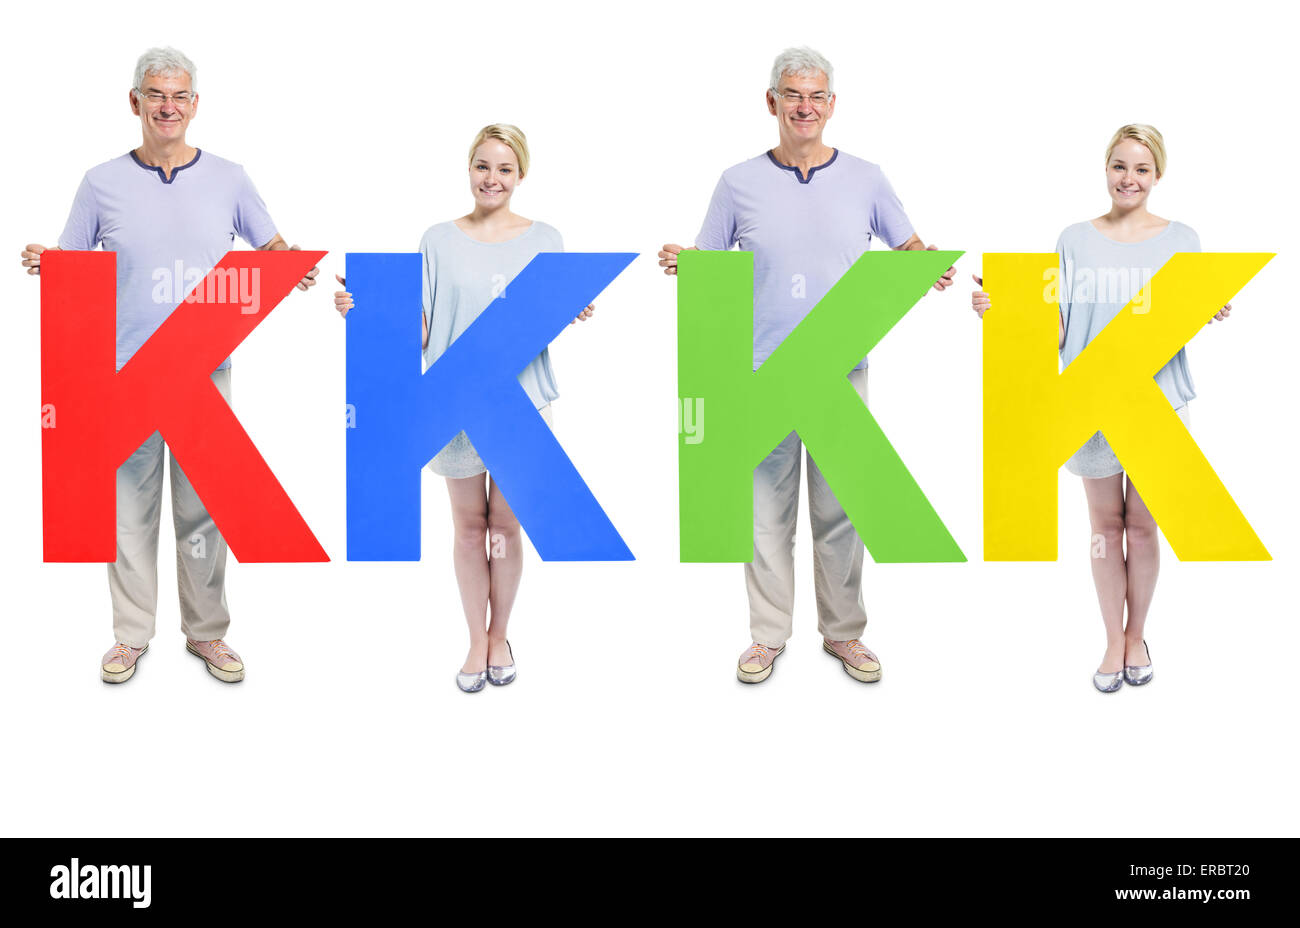 People holding letter 'K' - Stock Image